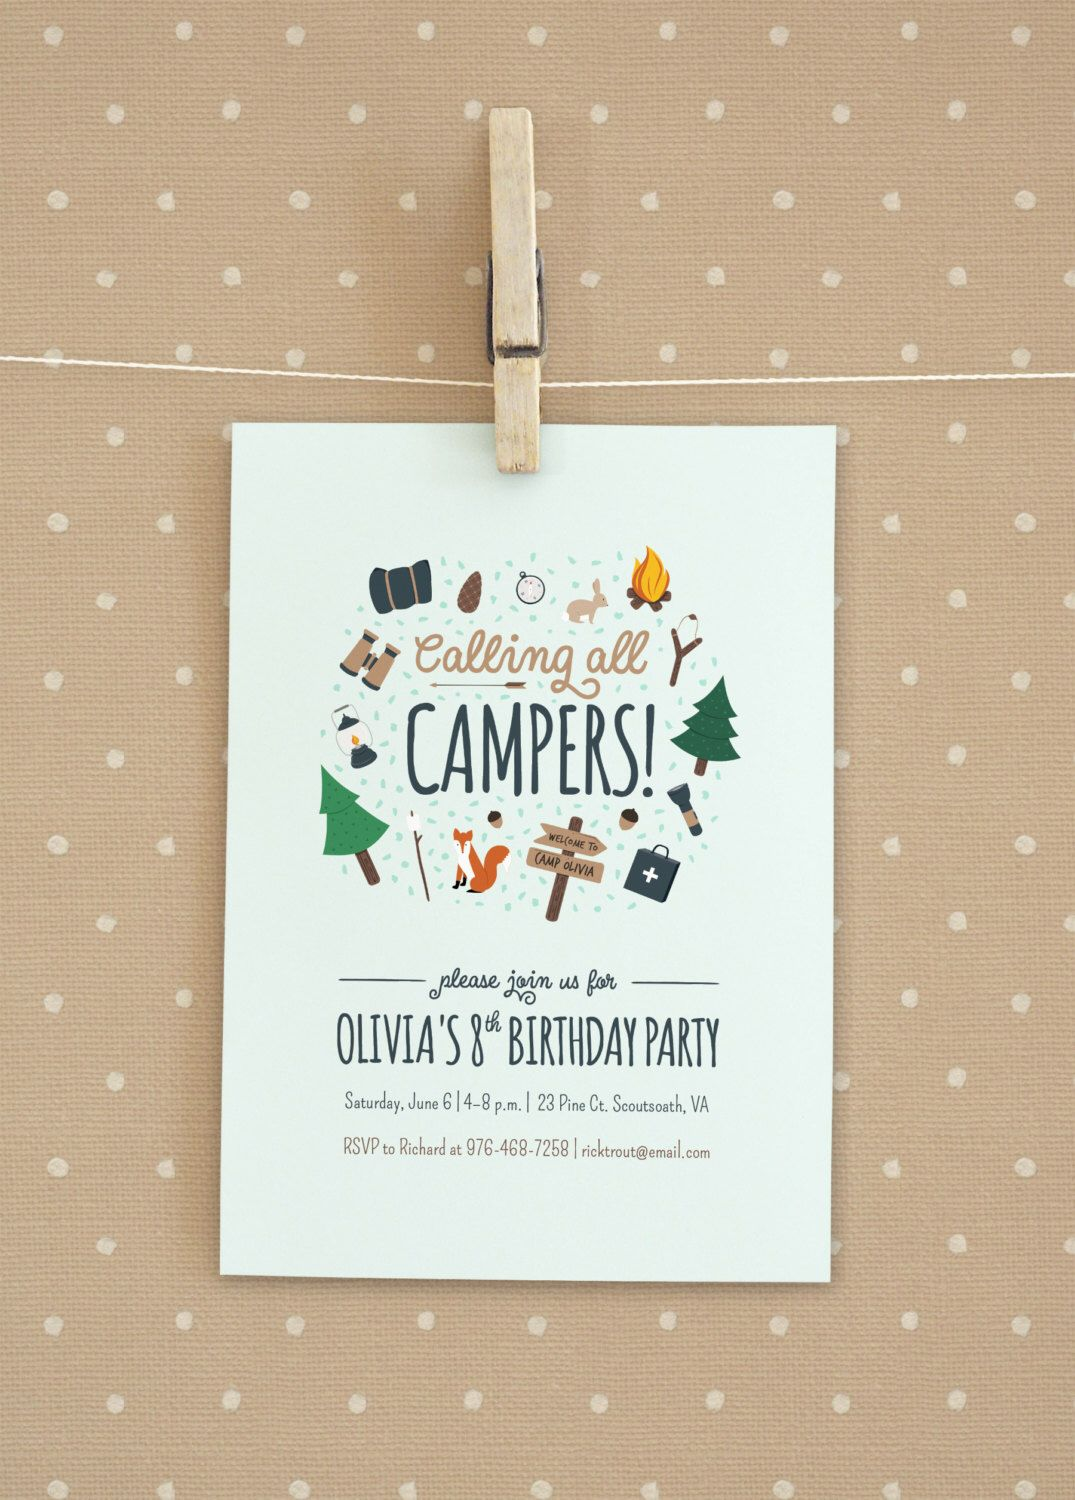 Camping Birthday Party Invitation | Camping Birthday | Pinterest ...